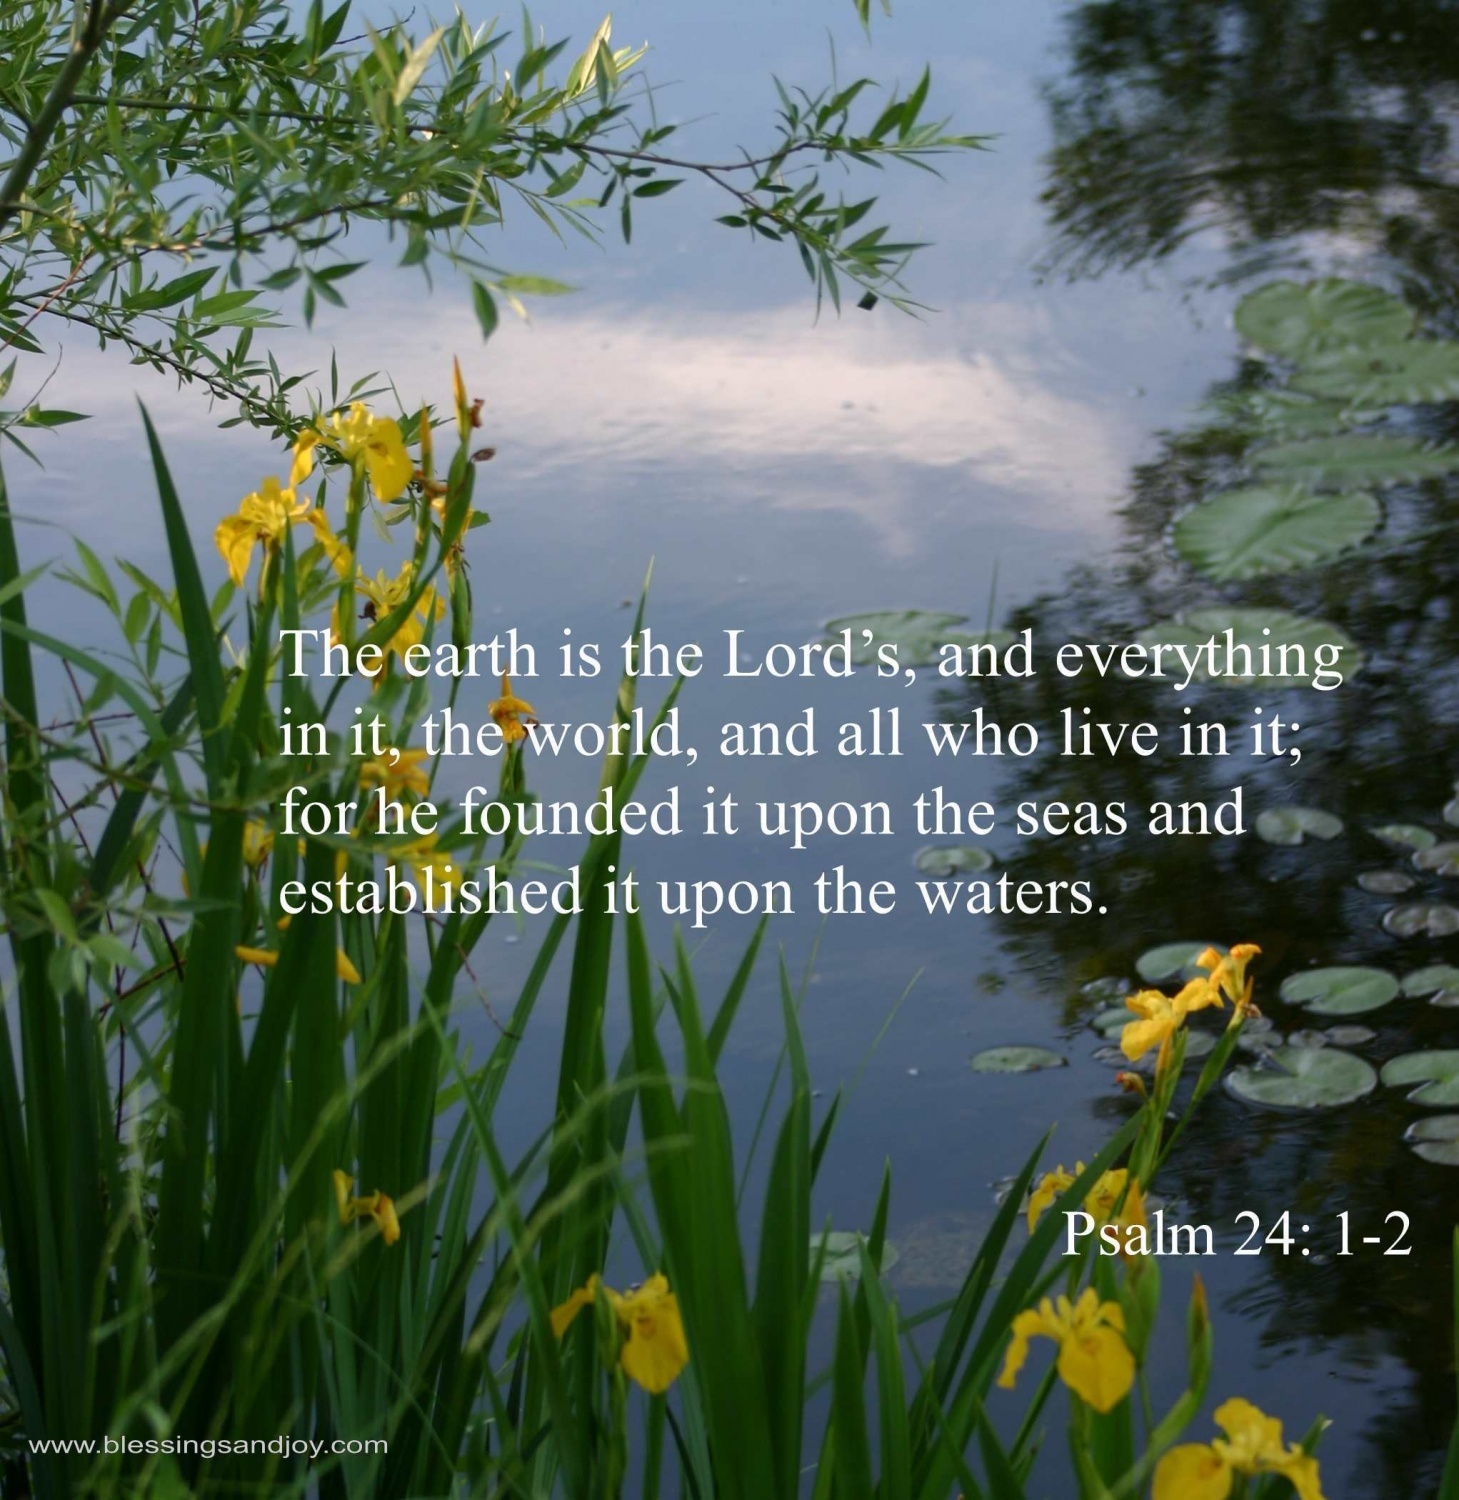 Blessings_Psalm_24_1_2_The_earth_is_the_Lords_and_everything.ch-47